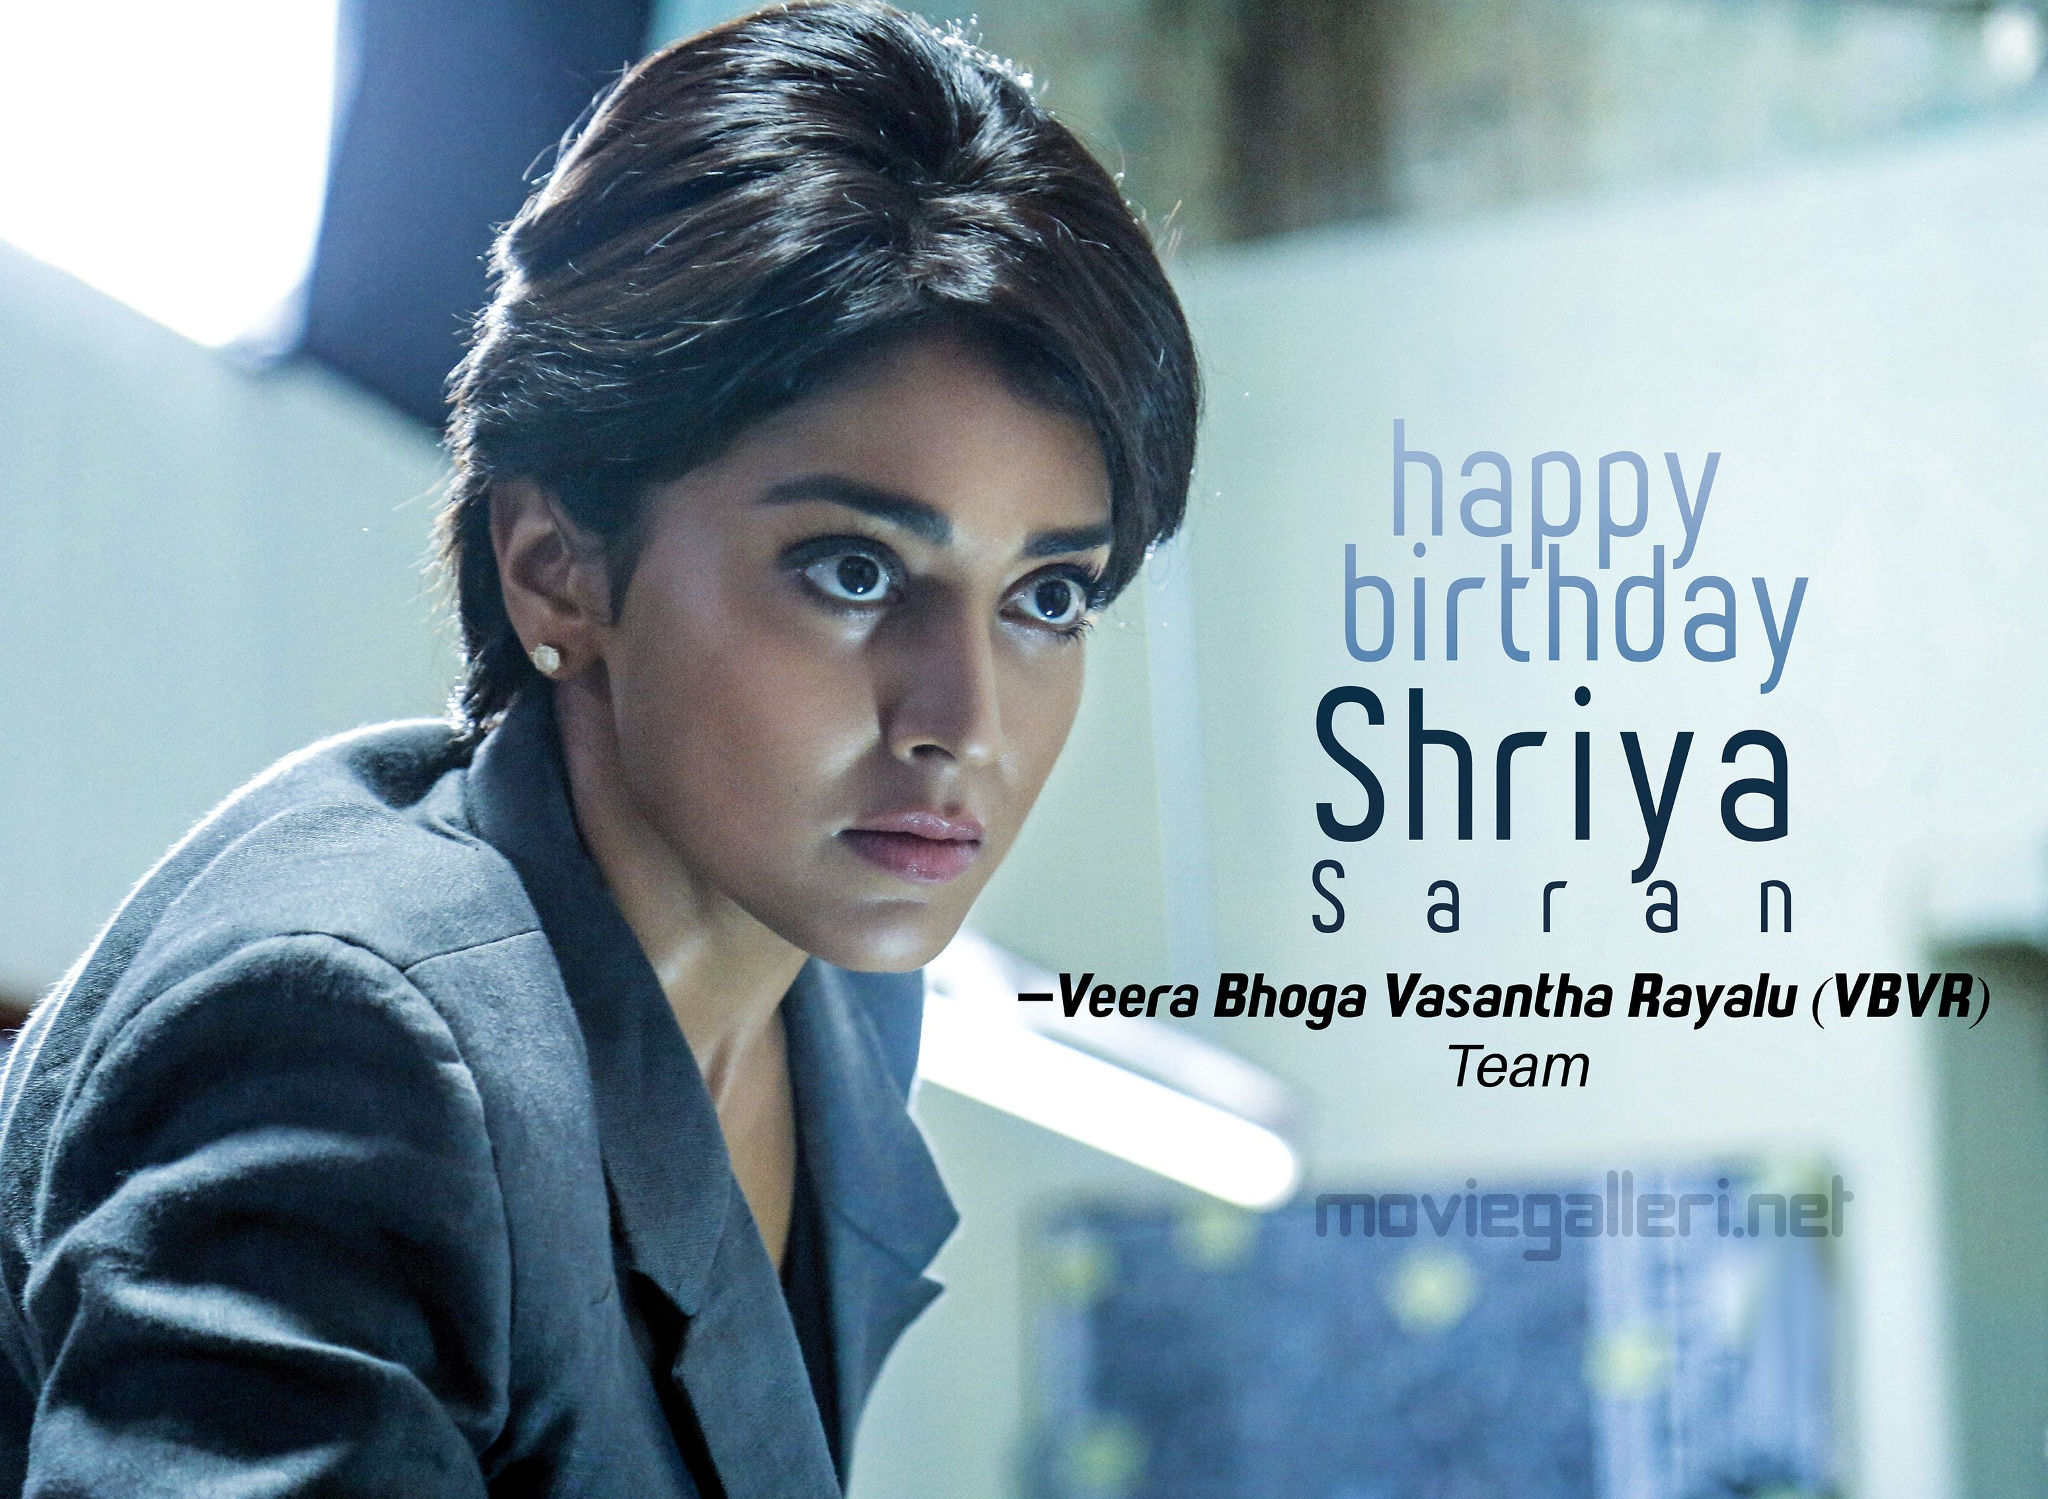 Veera Bhoga Vasantha Rayalu Movie Team wishes Shriya Saran Birthday